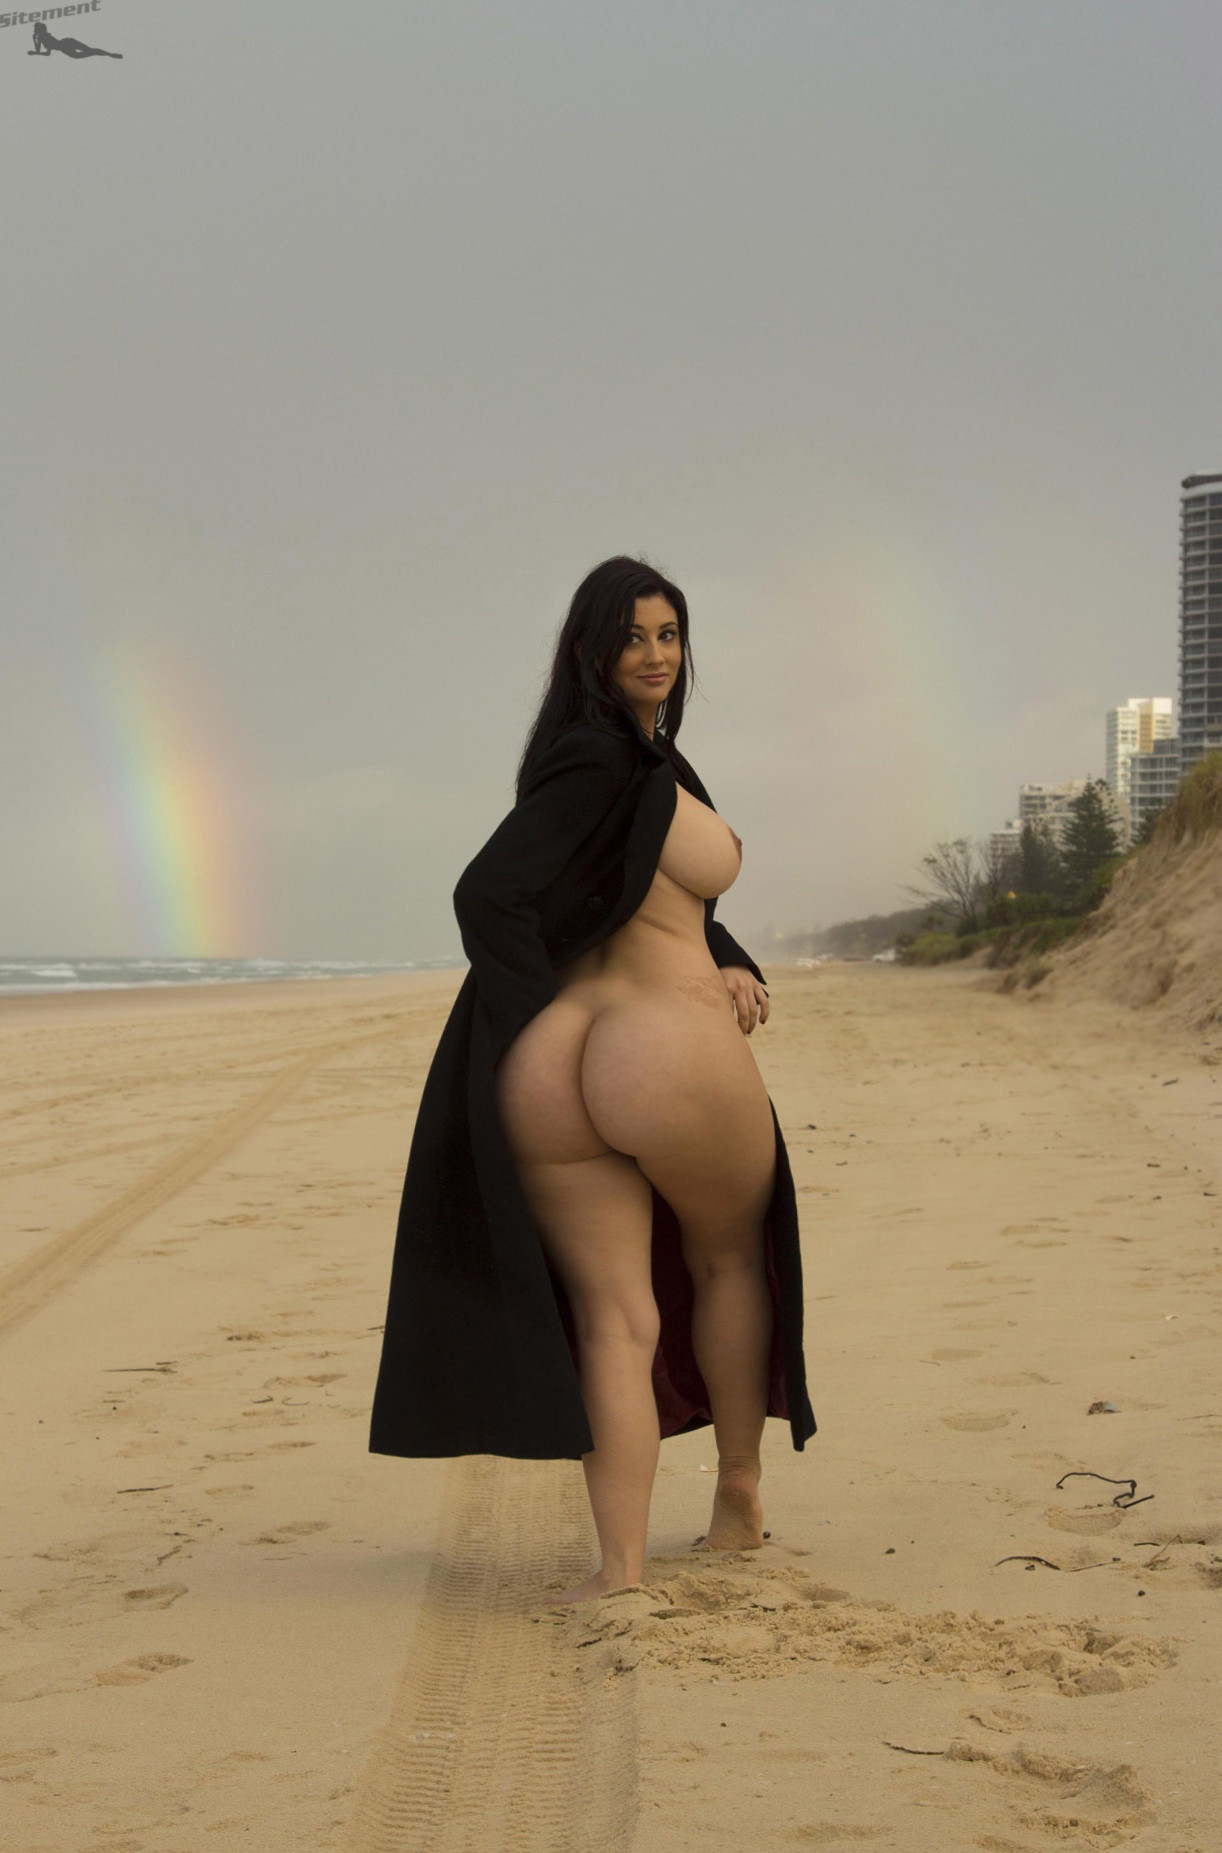 Thick middle eastern women nude